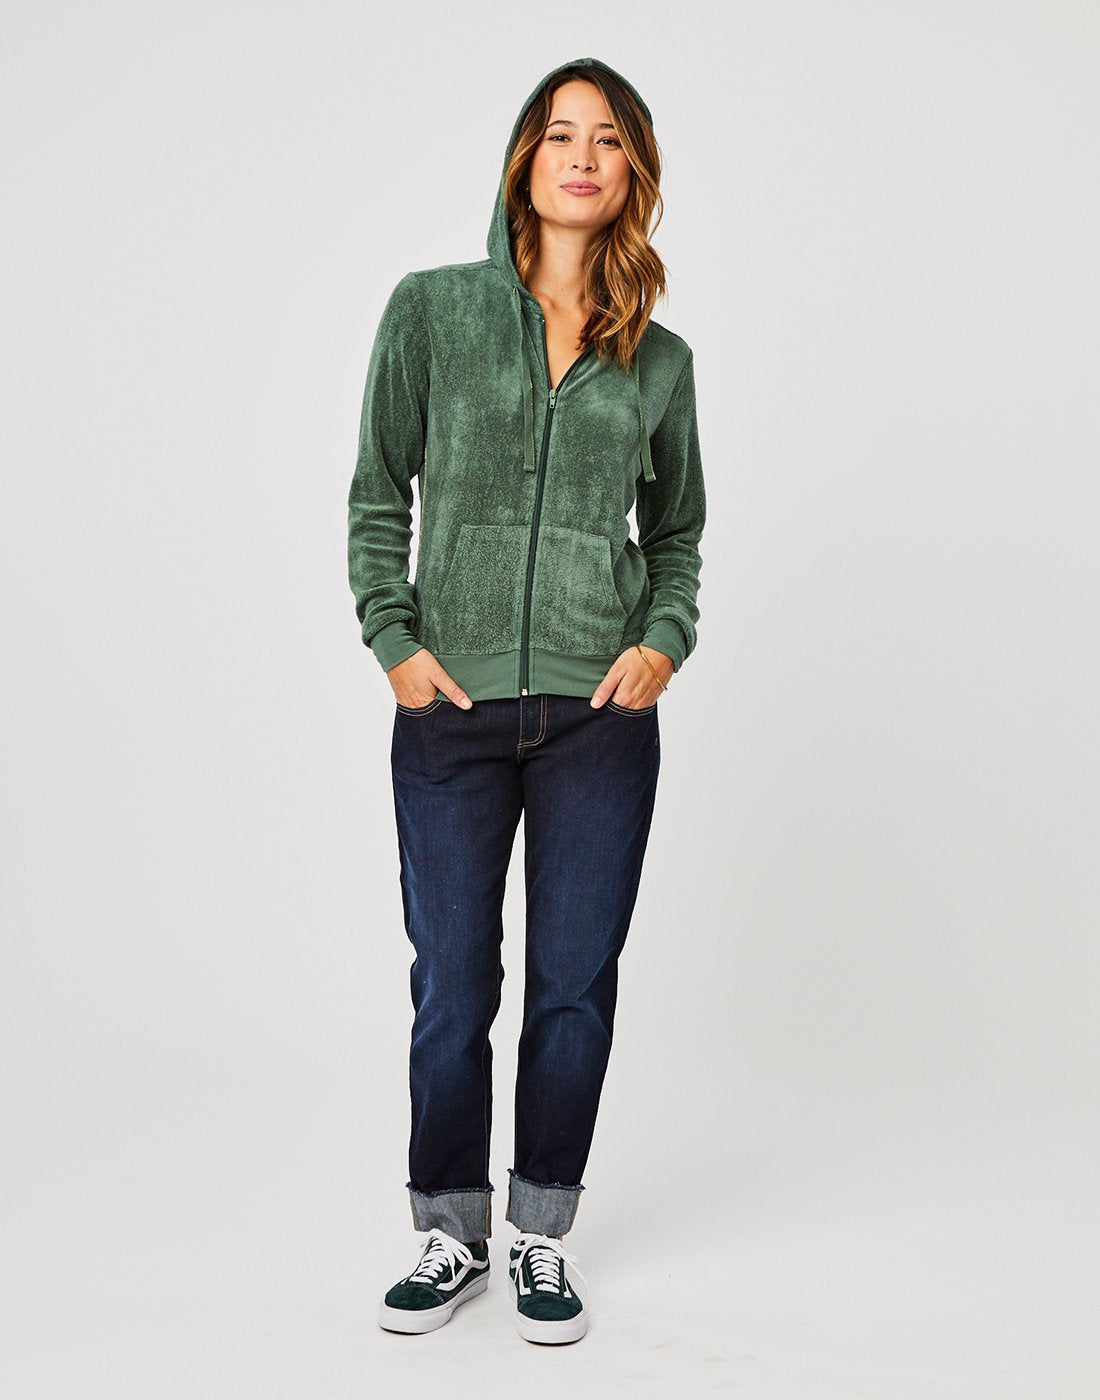 Carve Designs Arbor Zip-Up